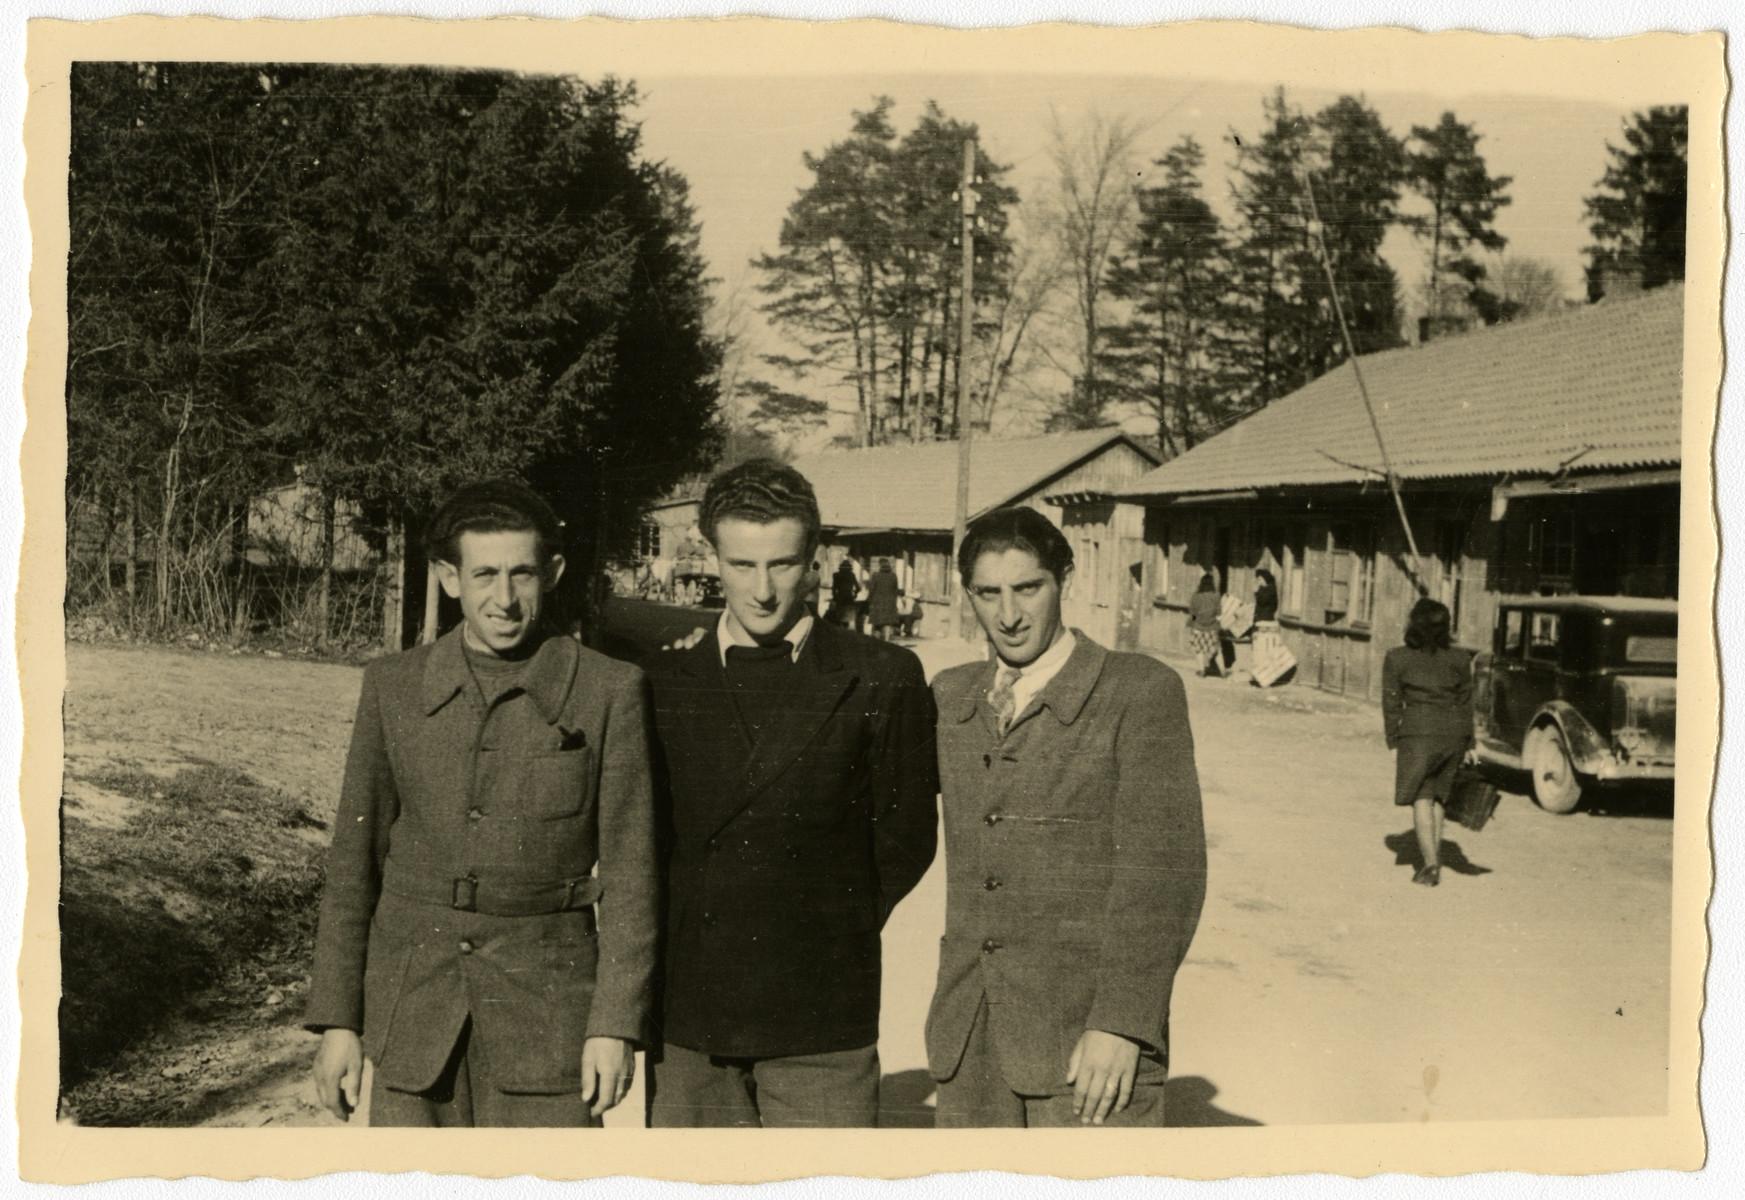 Portrait of three young men in the Feldafing displaced persons camp.  Pictured from left to right are Janek (Jack) Glucksman, Jaszke Aronowitz (Jack Arnel) and Chamek (Harry) Weinroth.